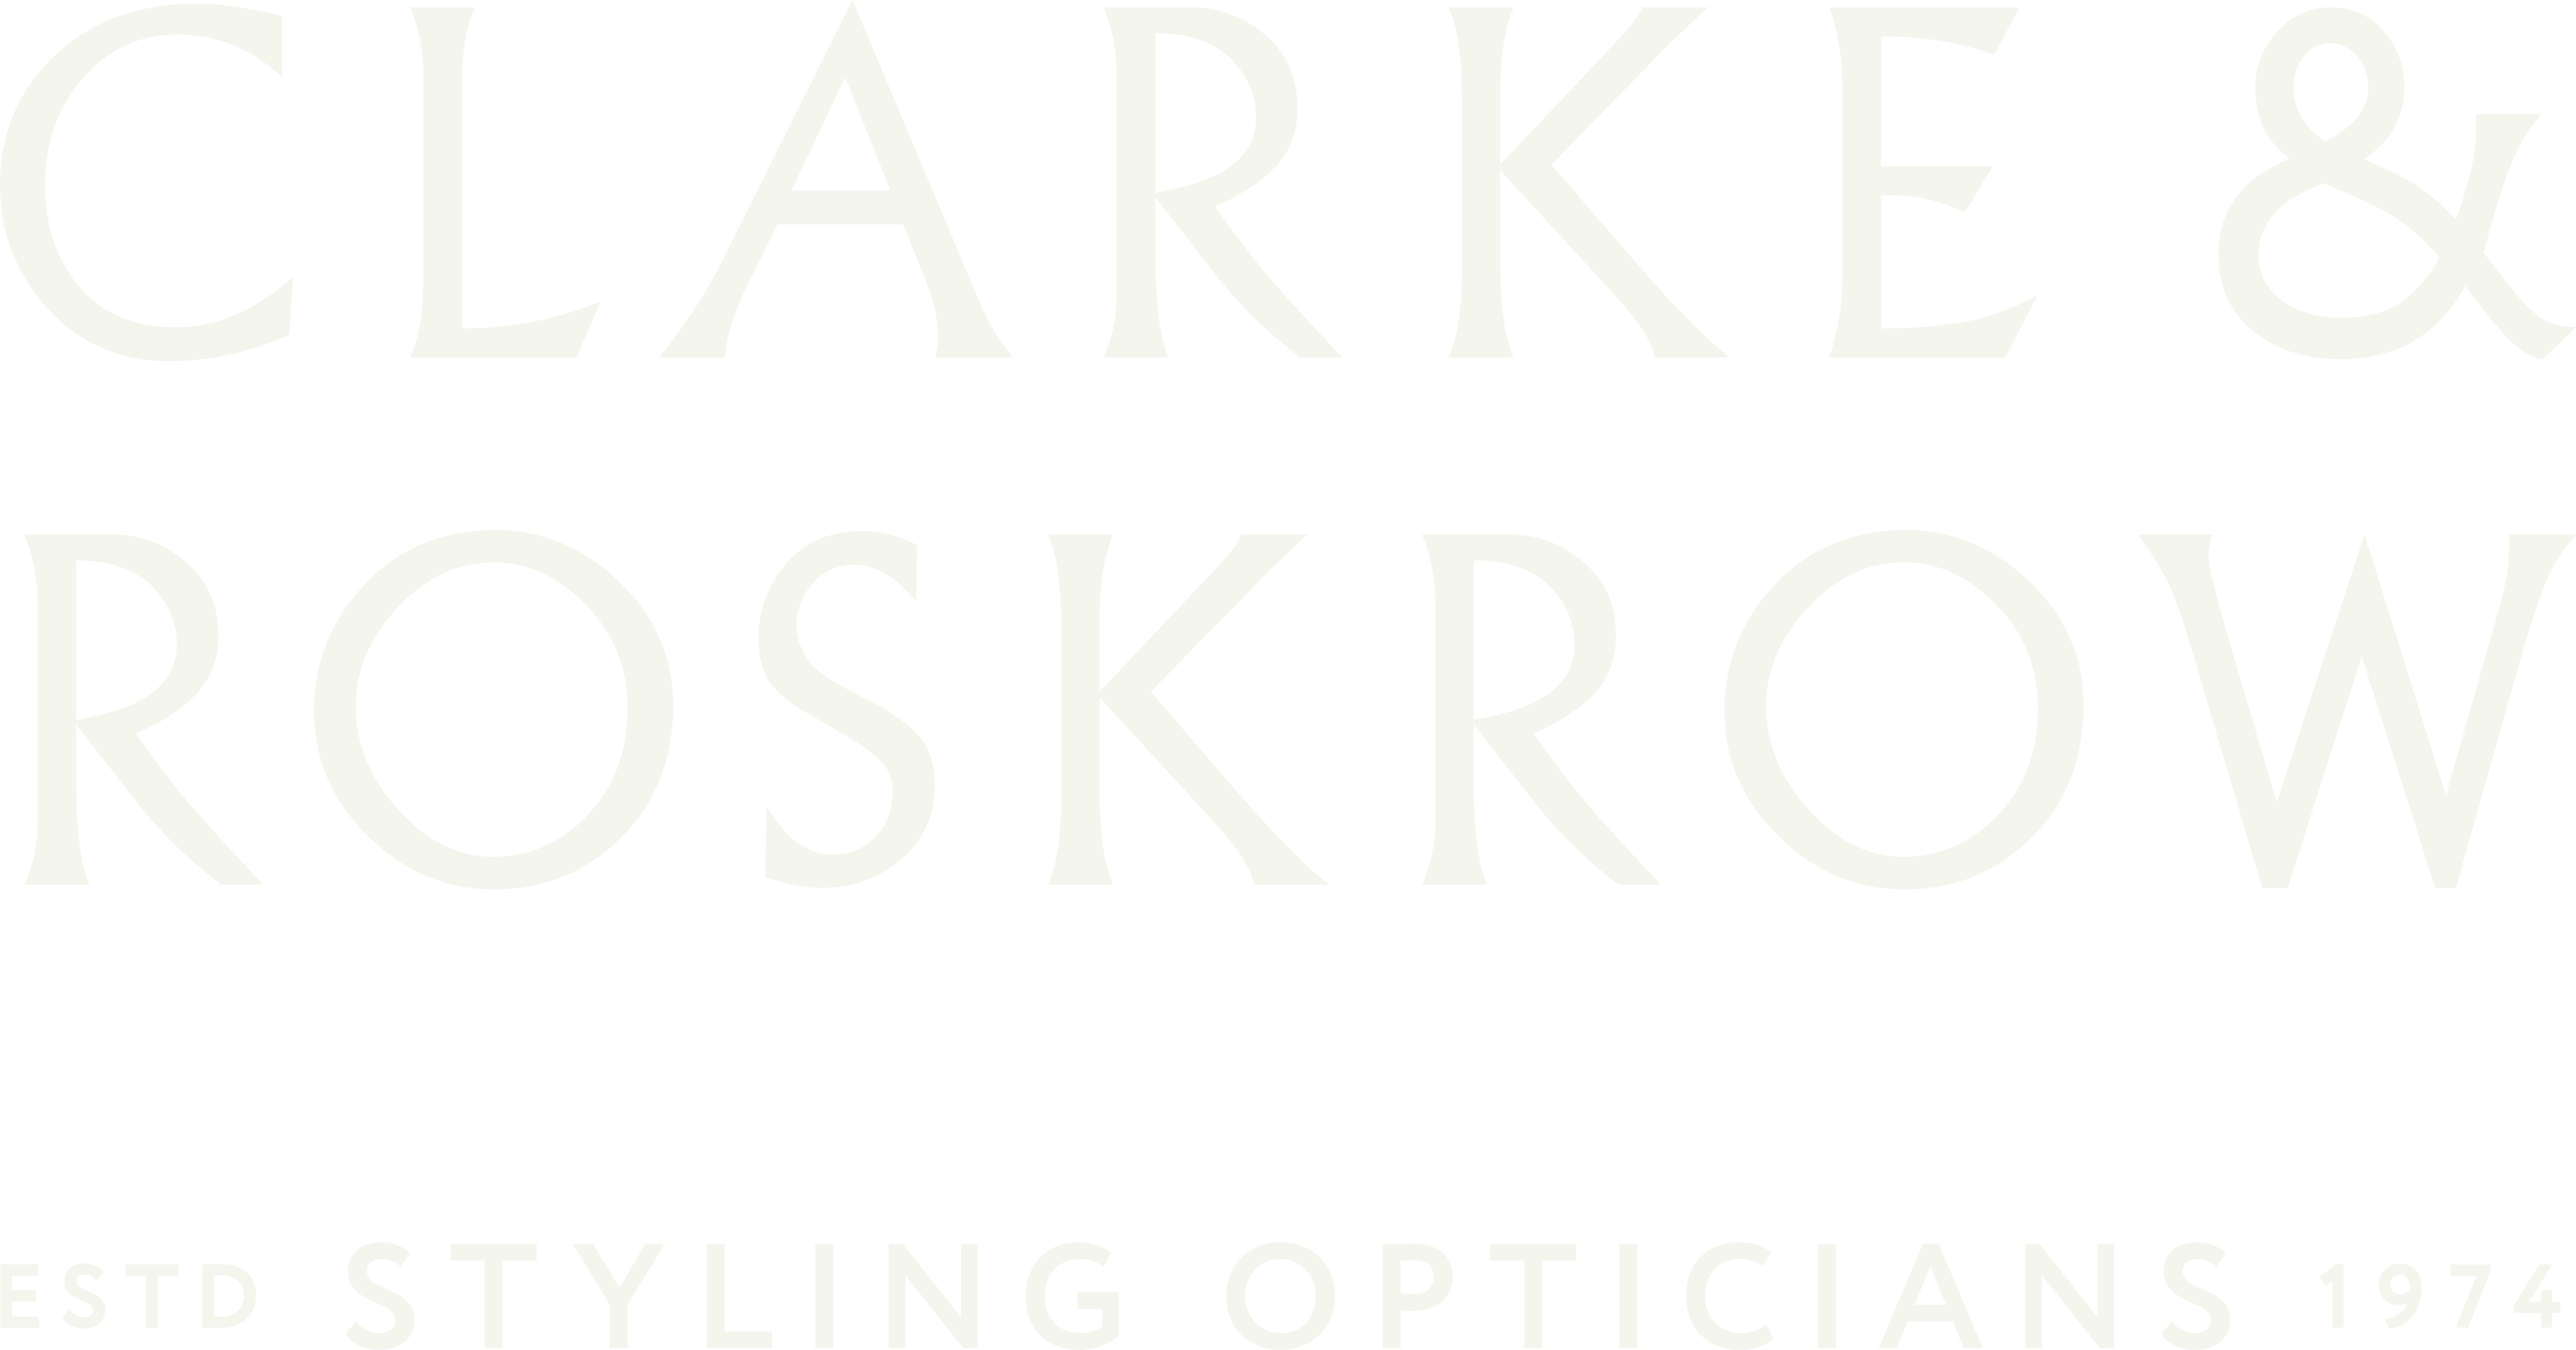 Clarke and Roskrow Styling Opticians